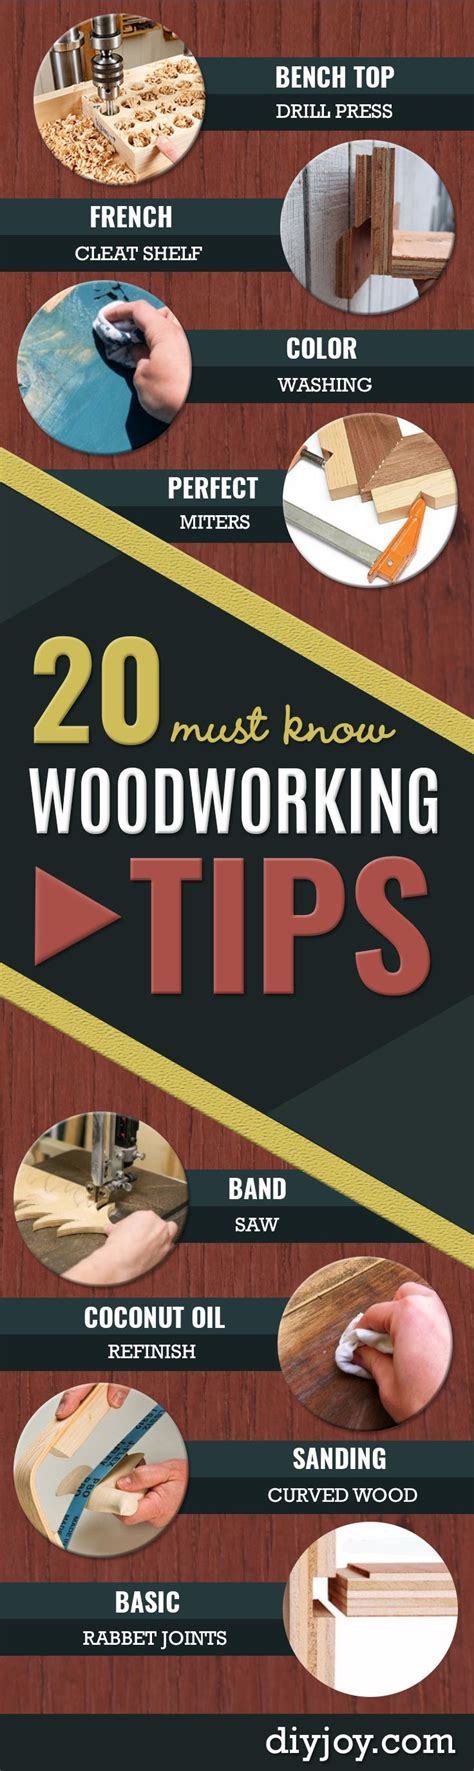 woodworking beginners guide 1000 ideas about cool woodworking projects on